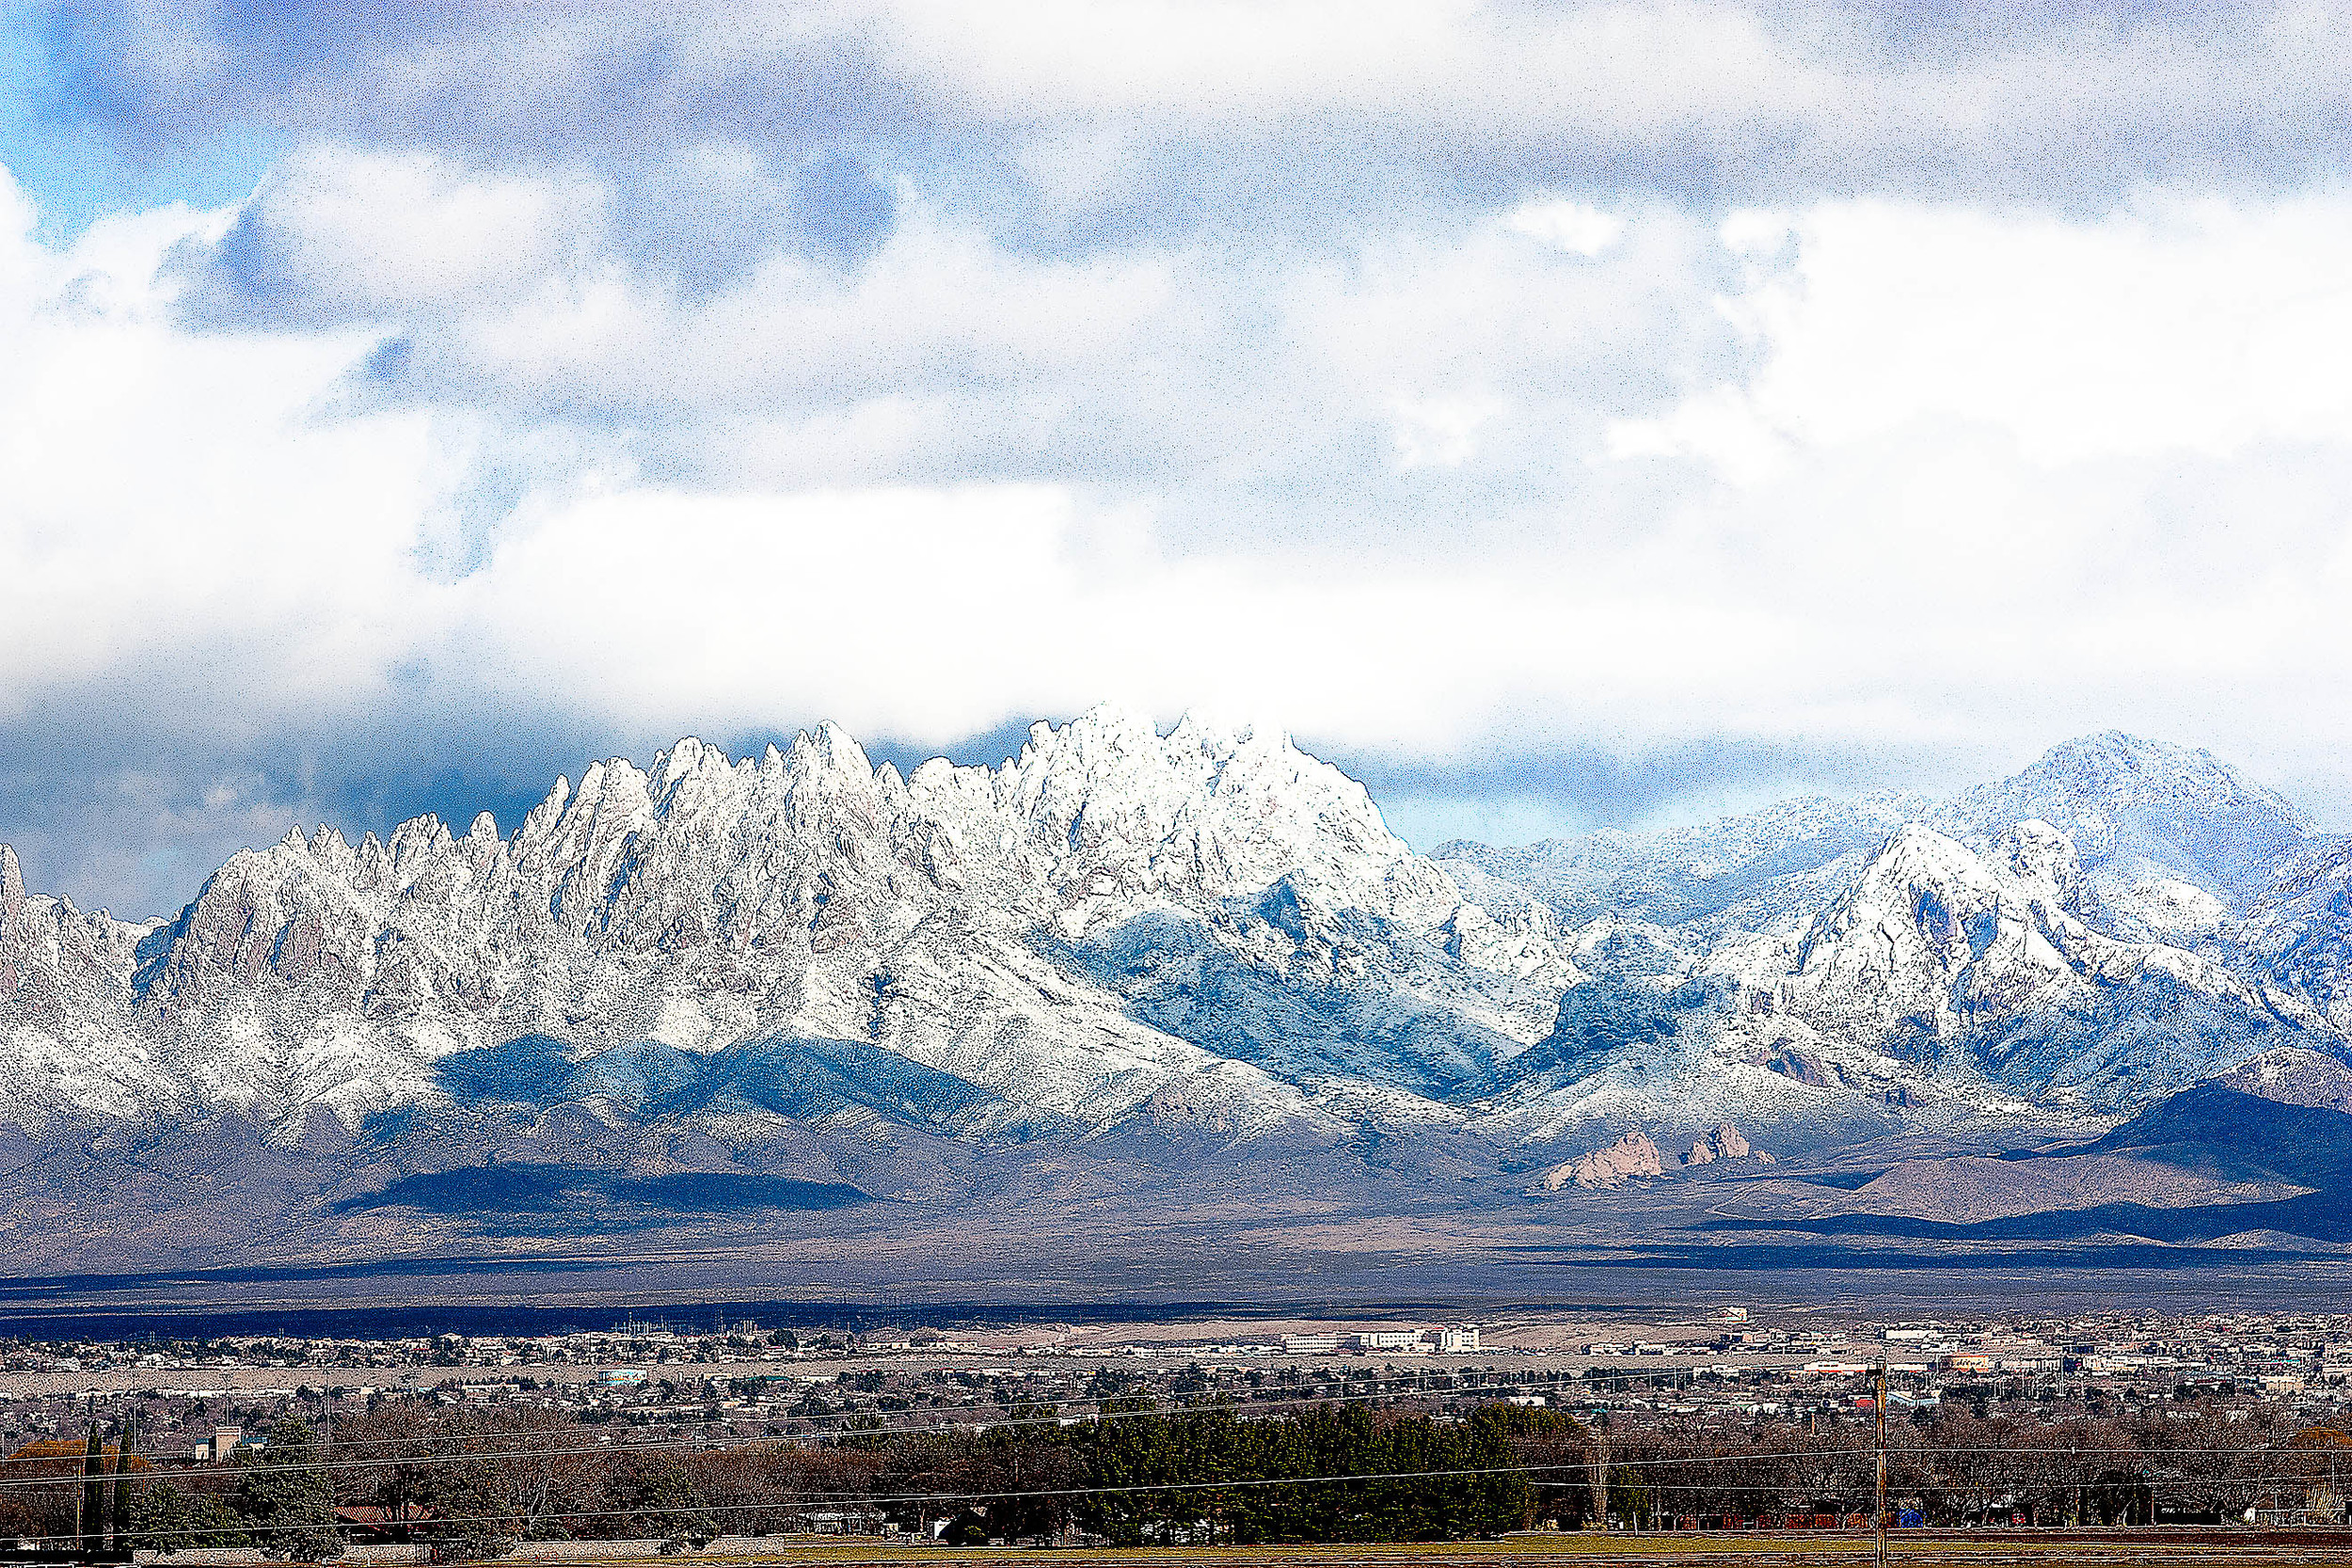 Snow on the Organs, Las Cruces, NM